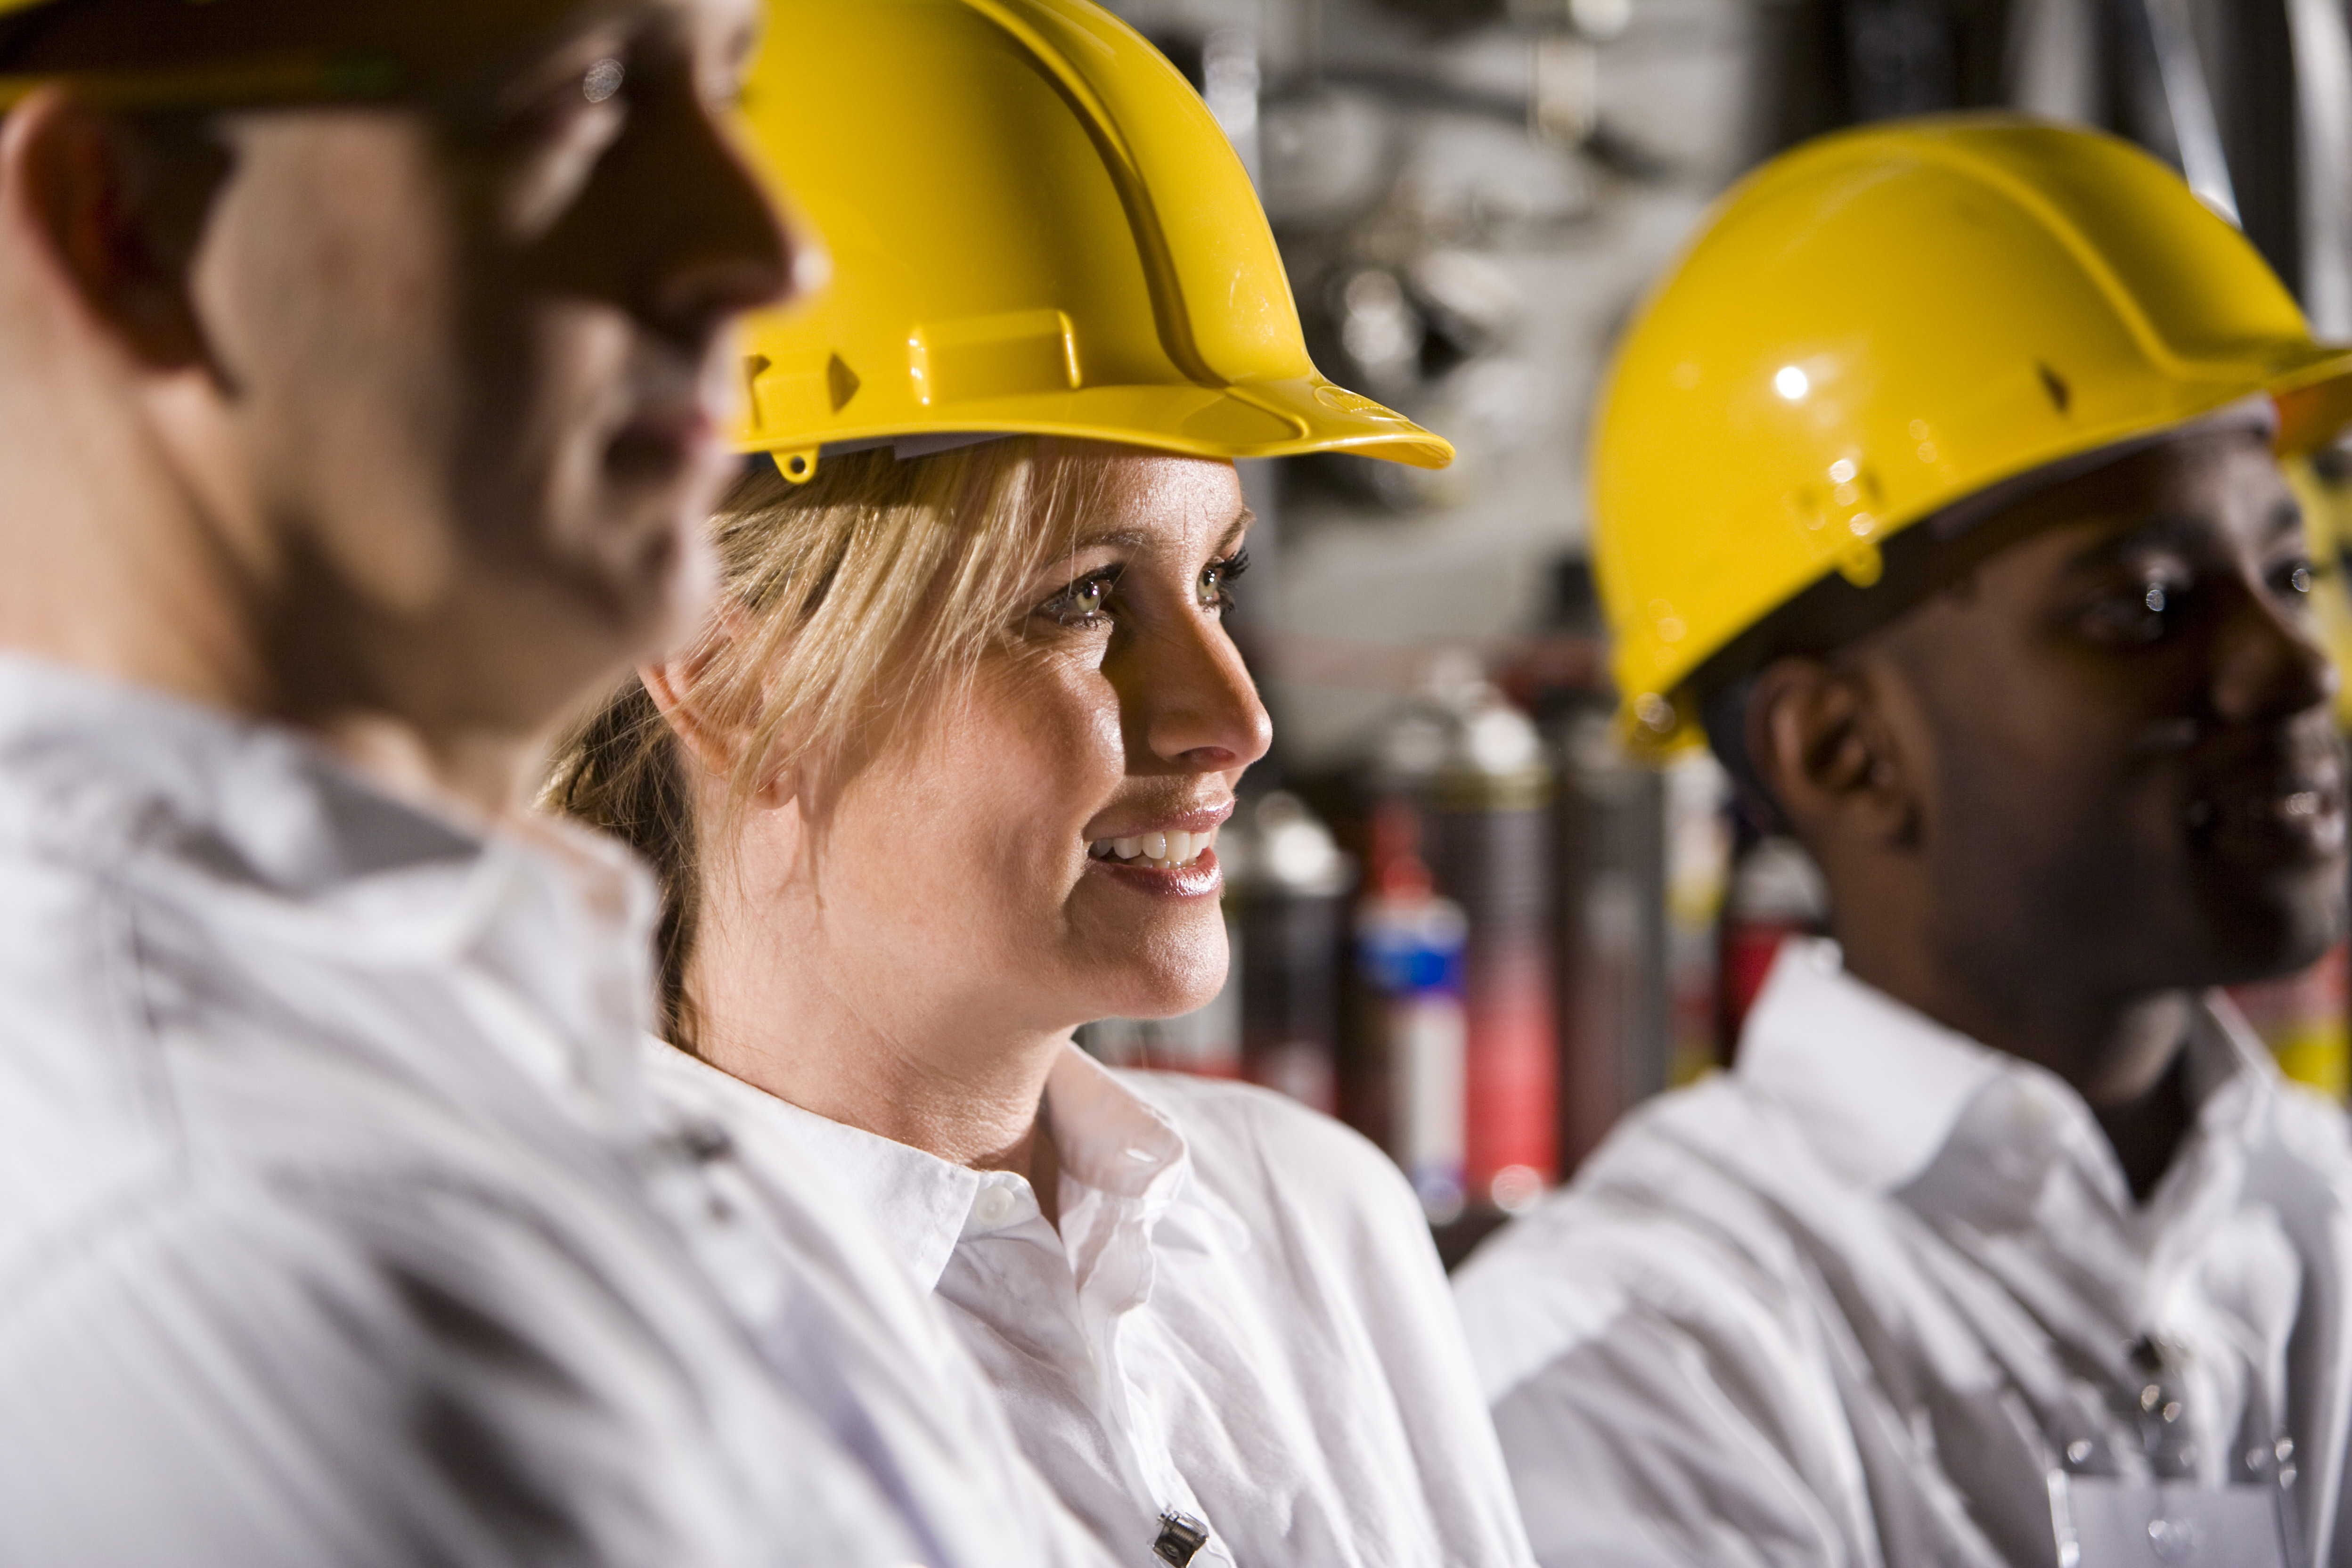 Close up of coworkers wearing hard hats